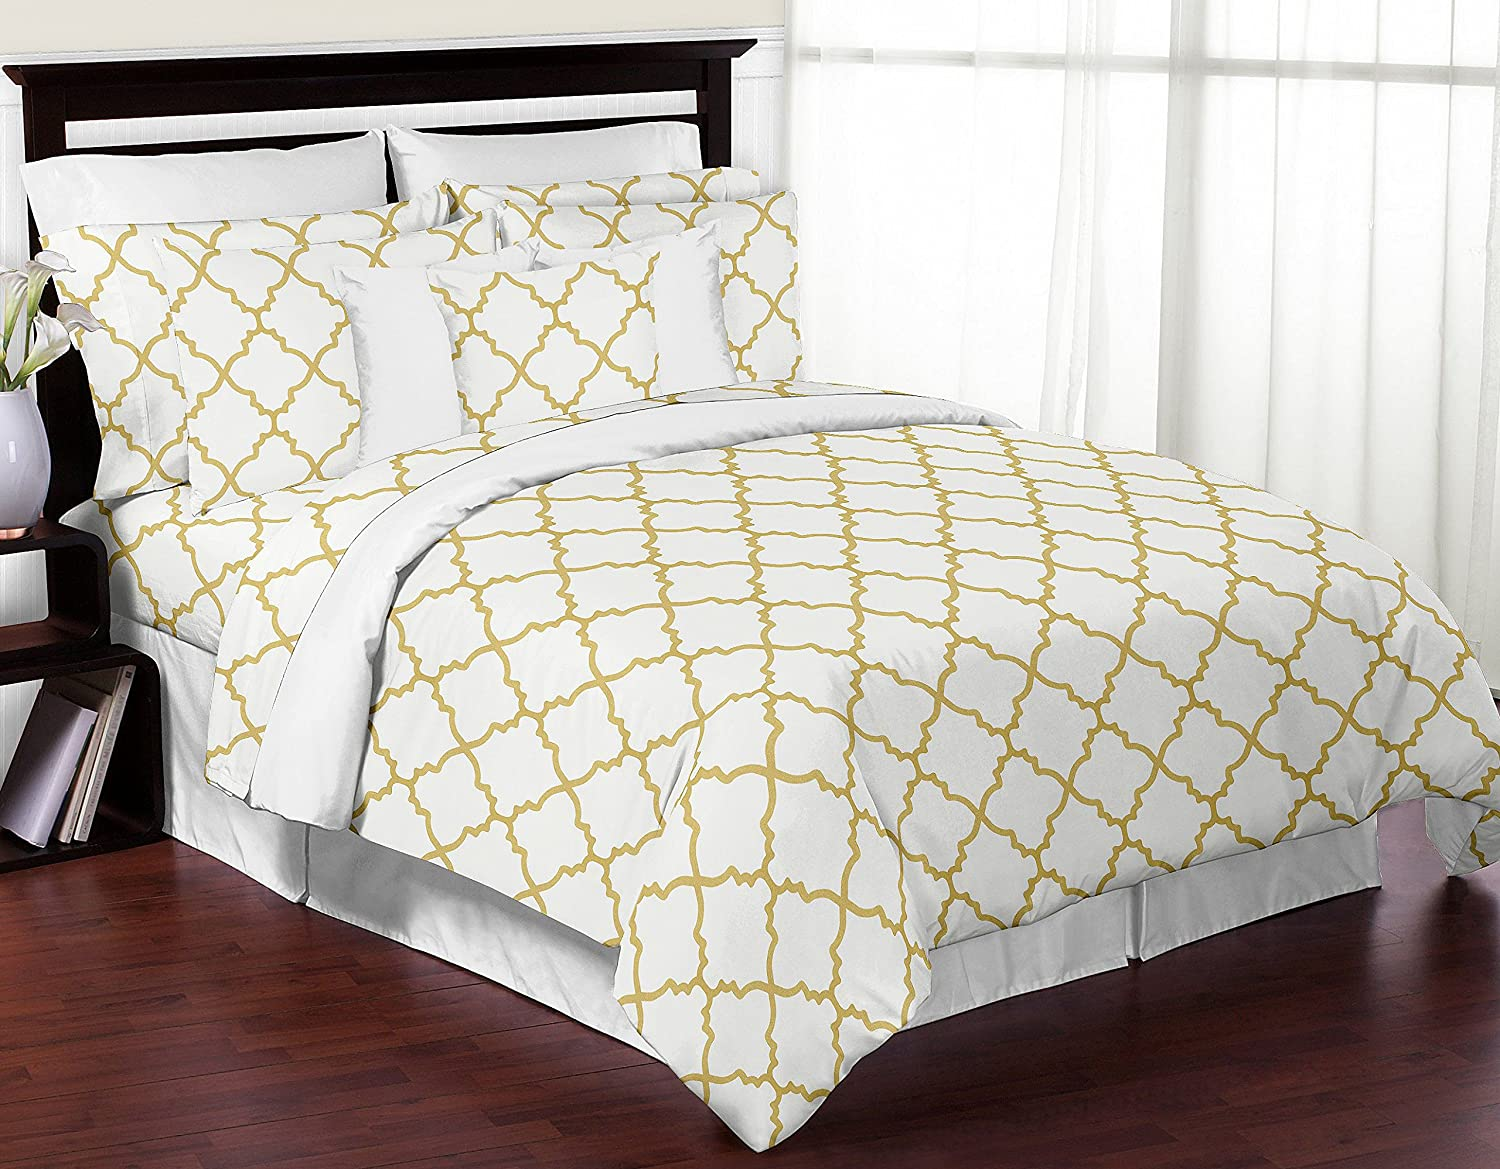 Amazon Com 4 Piece Queen Sheet Set For White And Gold Trellis